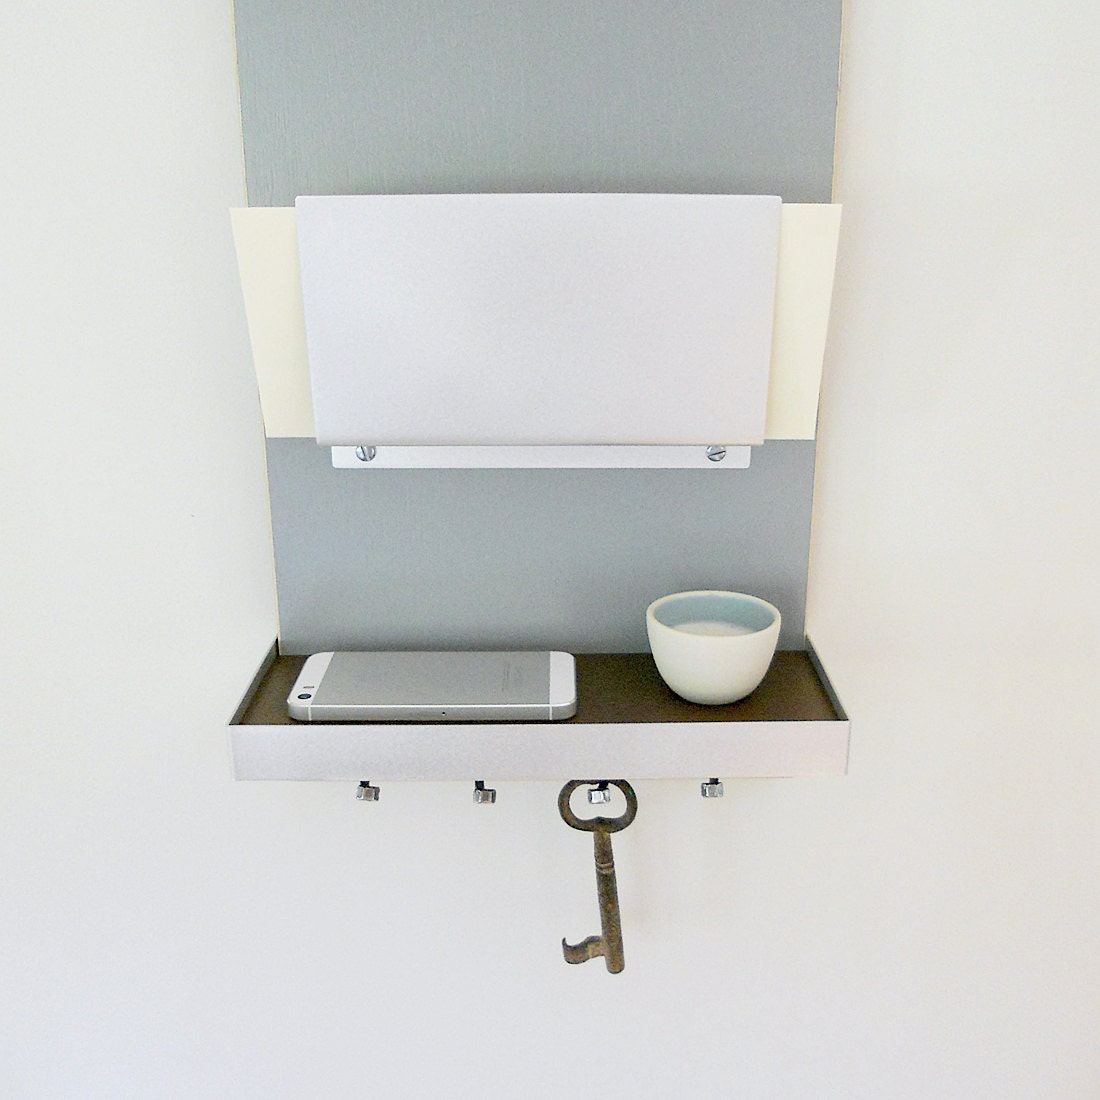 IPHONE MAIL KEY Center Modern Wall Mounted Organizer with Shelf and Key  Hooks for Home Entry